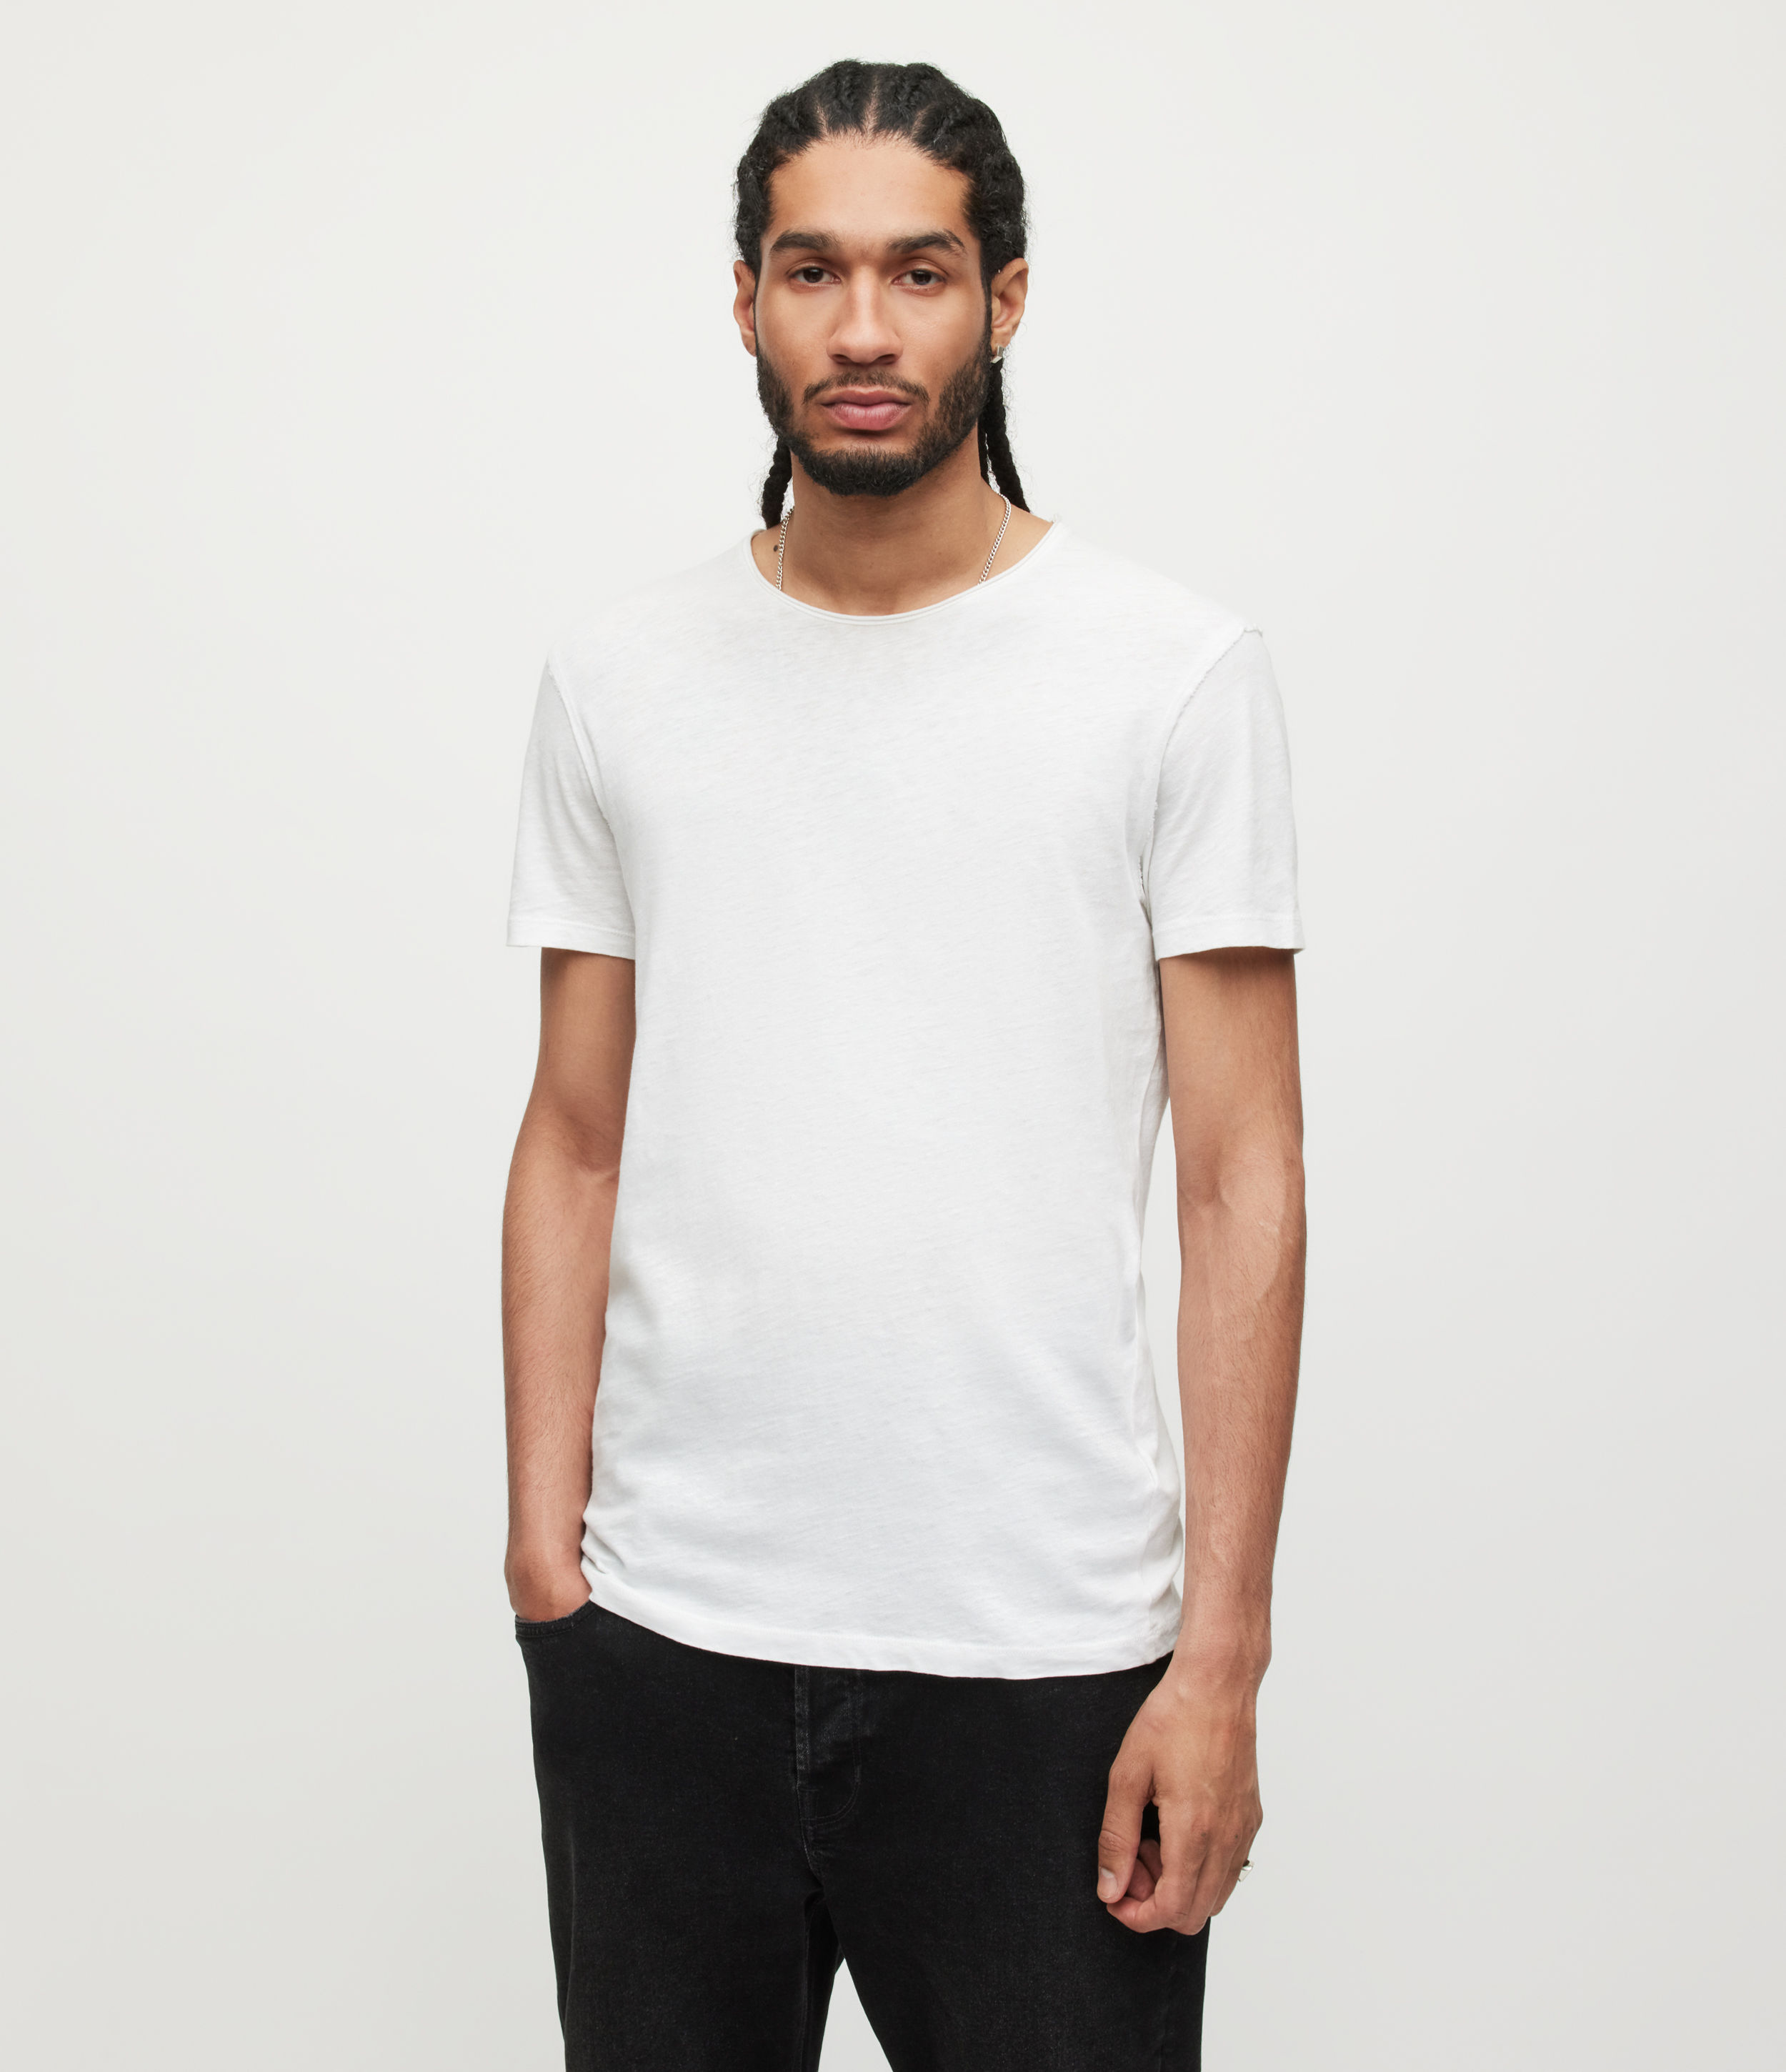 AllSaints Men's Cotton Regular Fit Figure Crew T-Shirt, White, Size: L